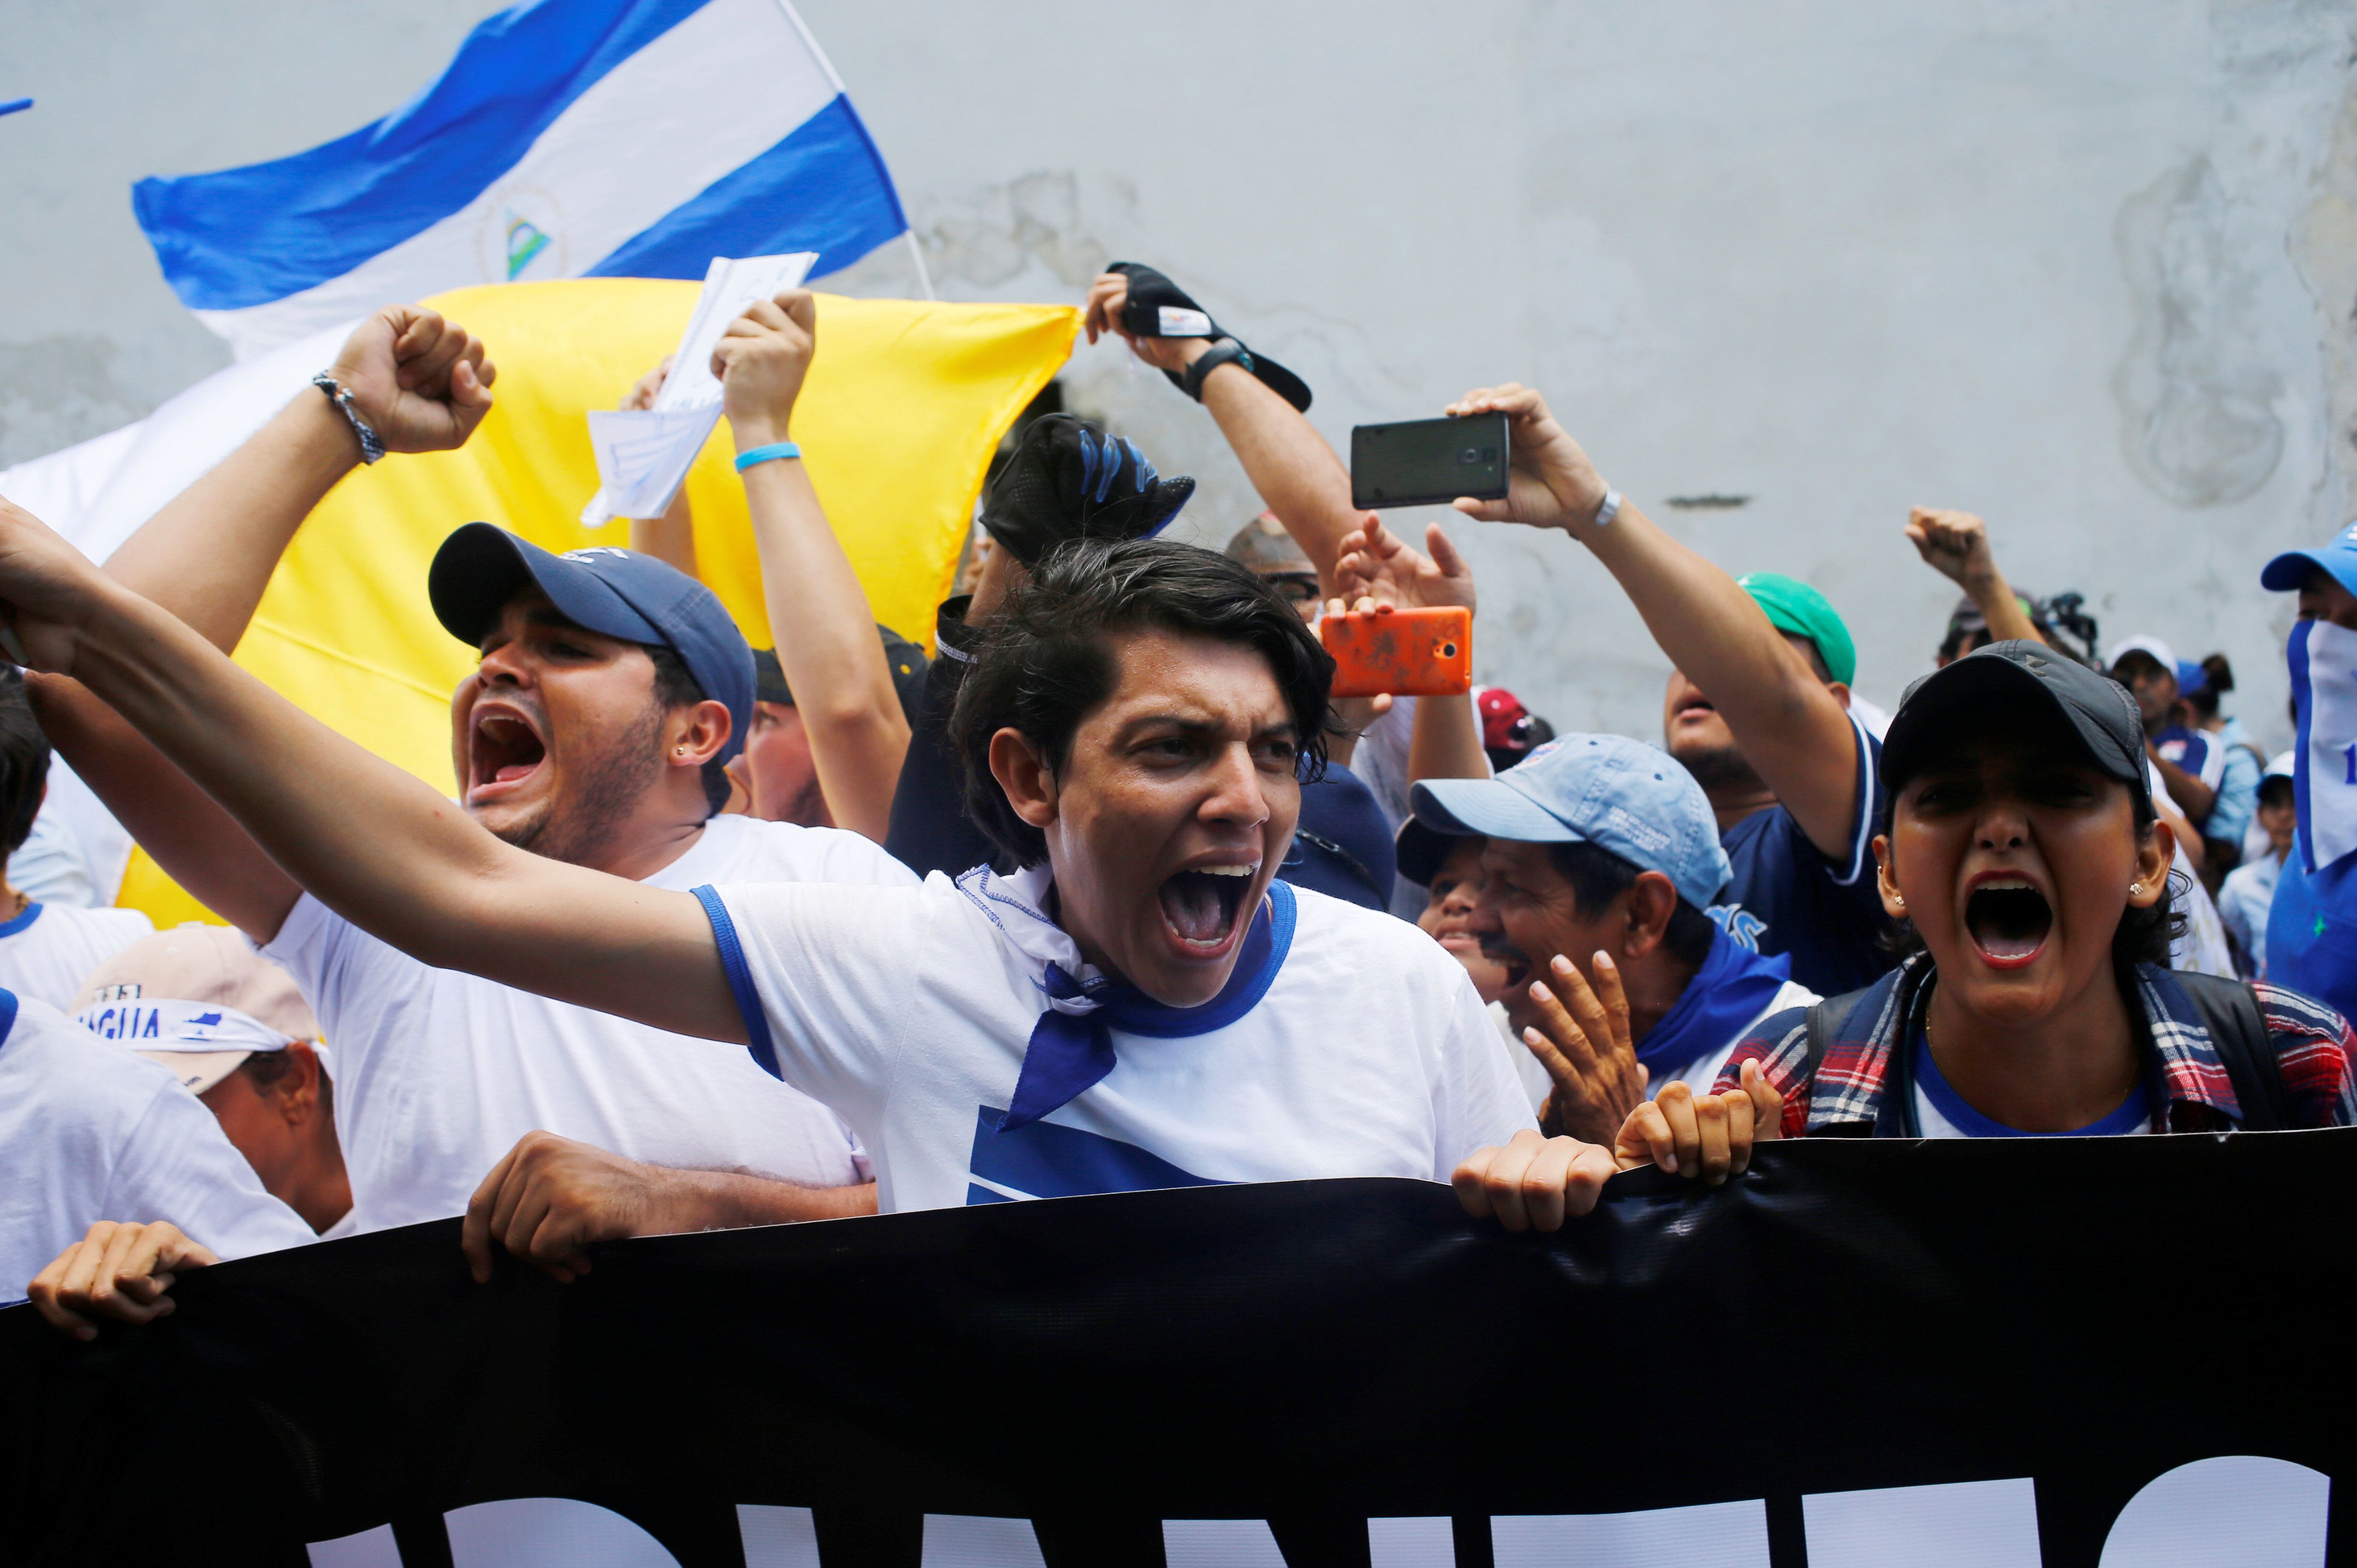 Students yell slogans during an anti-government protest outside the National Autonomous University of Nicaragua (UNAN) in Leon, Nicaragua, July 30, 2018.  REUTERS/Oswaldo Rivas